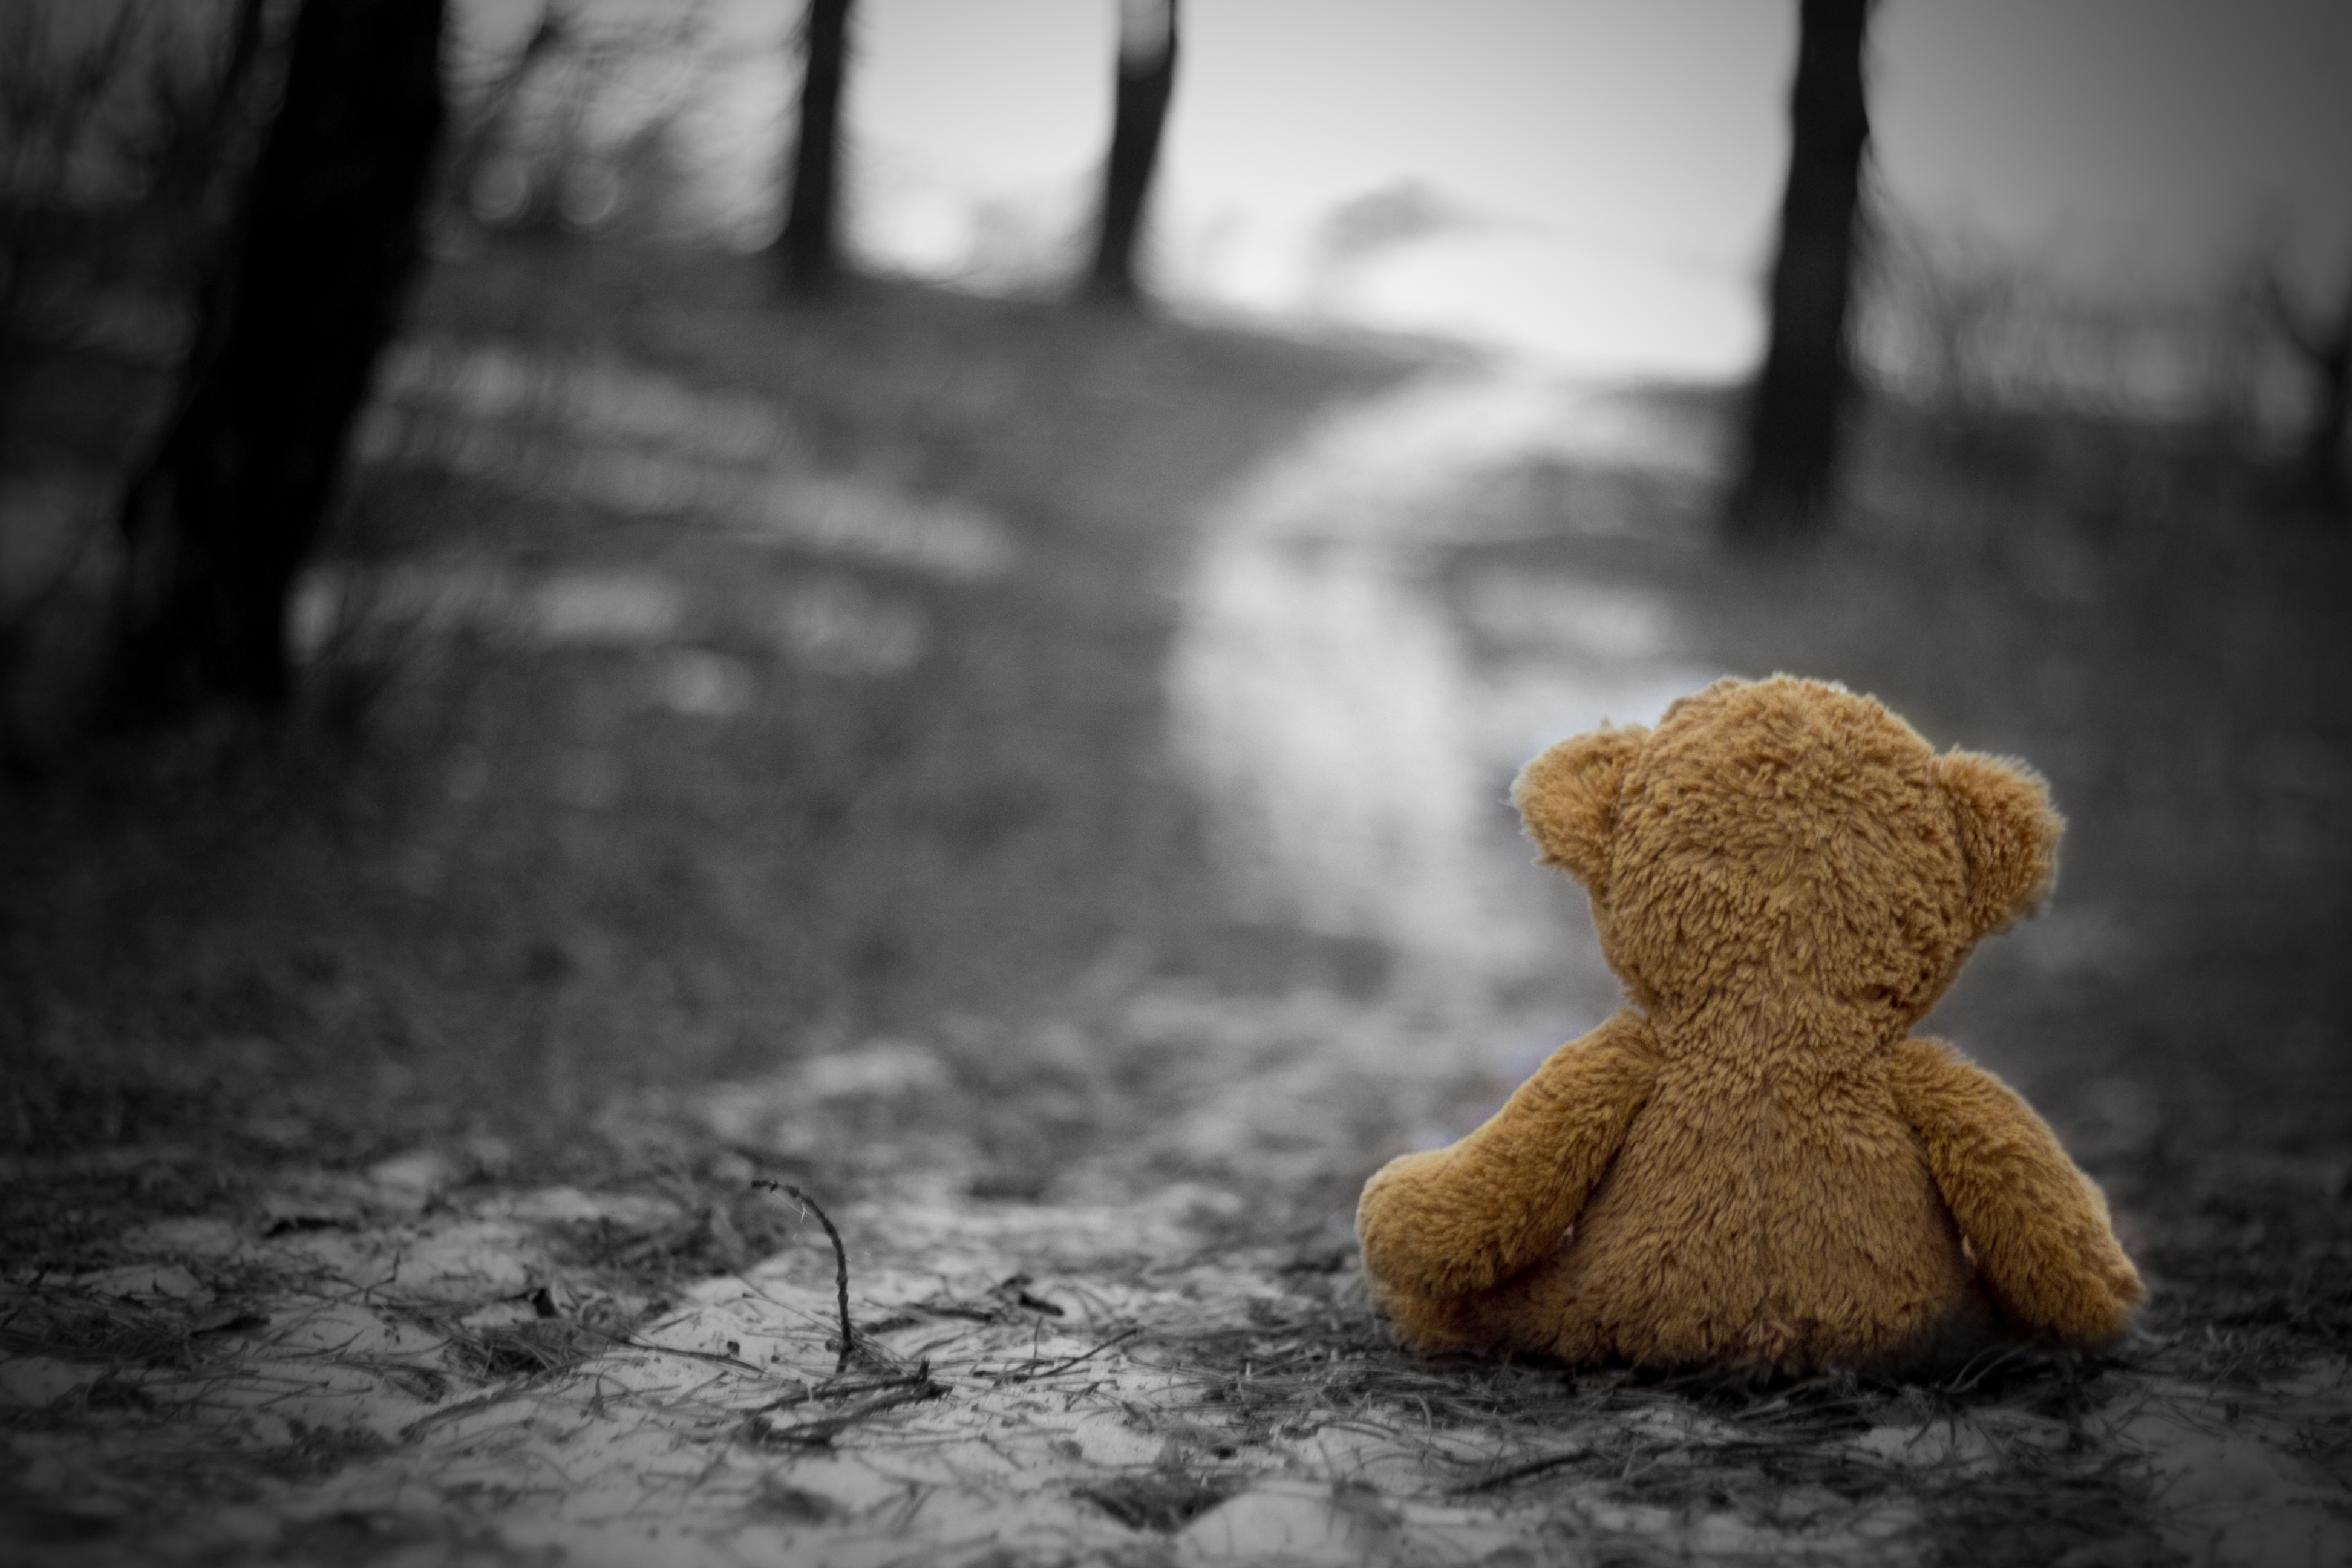 download Toy loneliness grief sadness autumn nostalgia cold 3888x2592